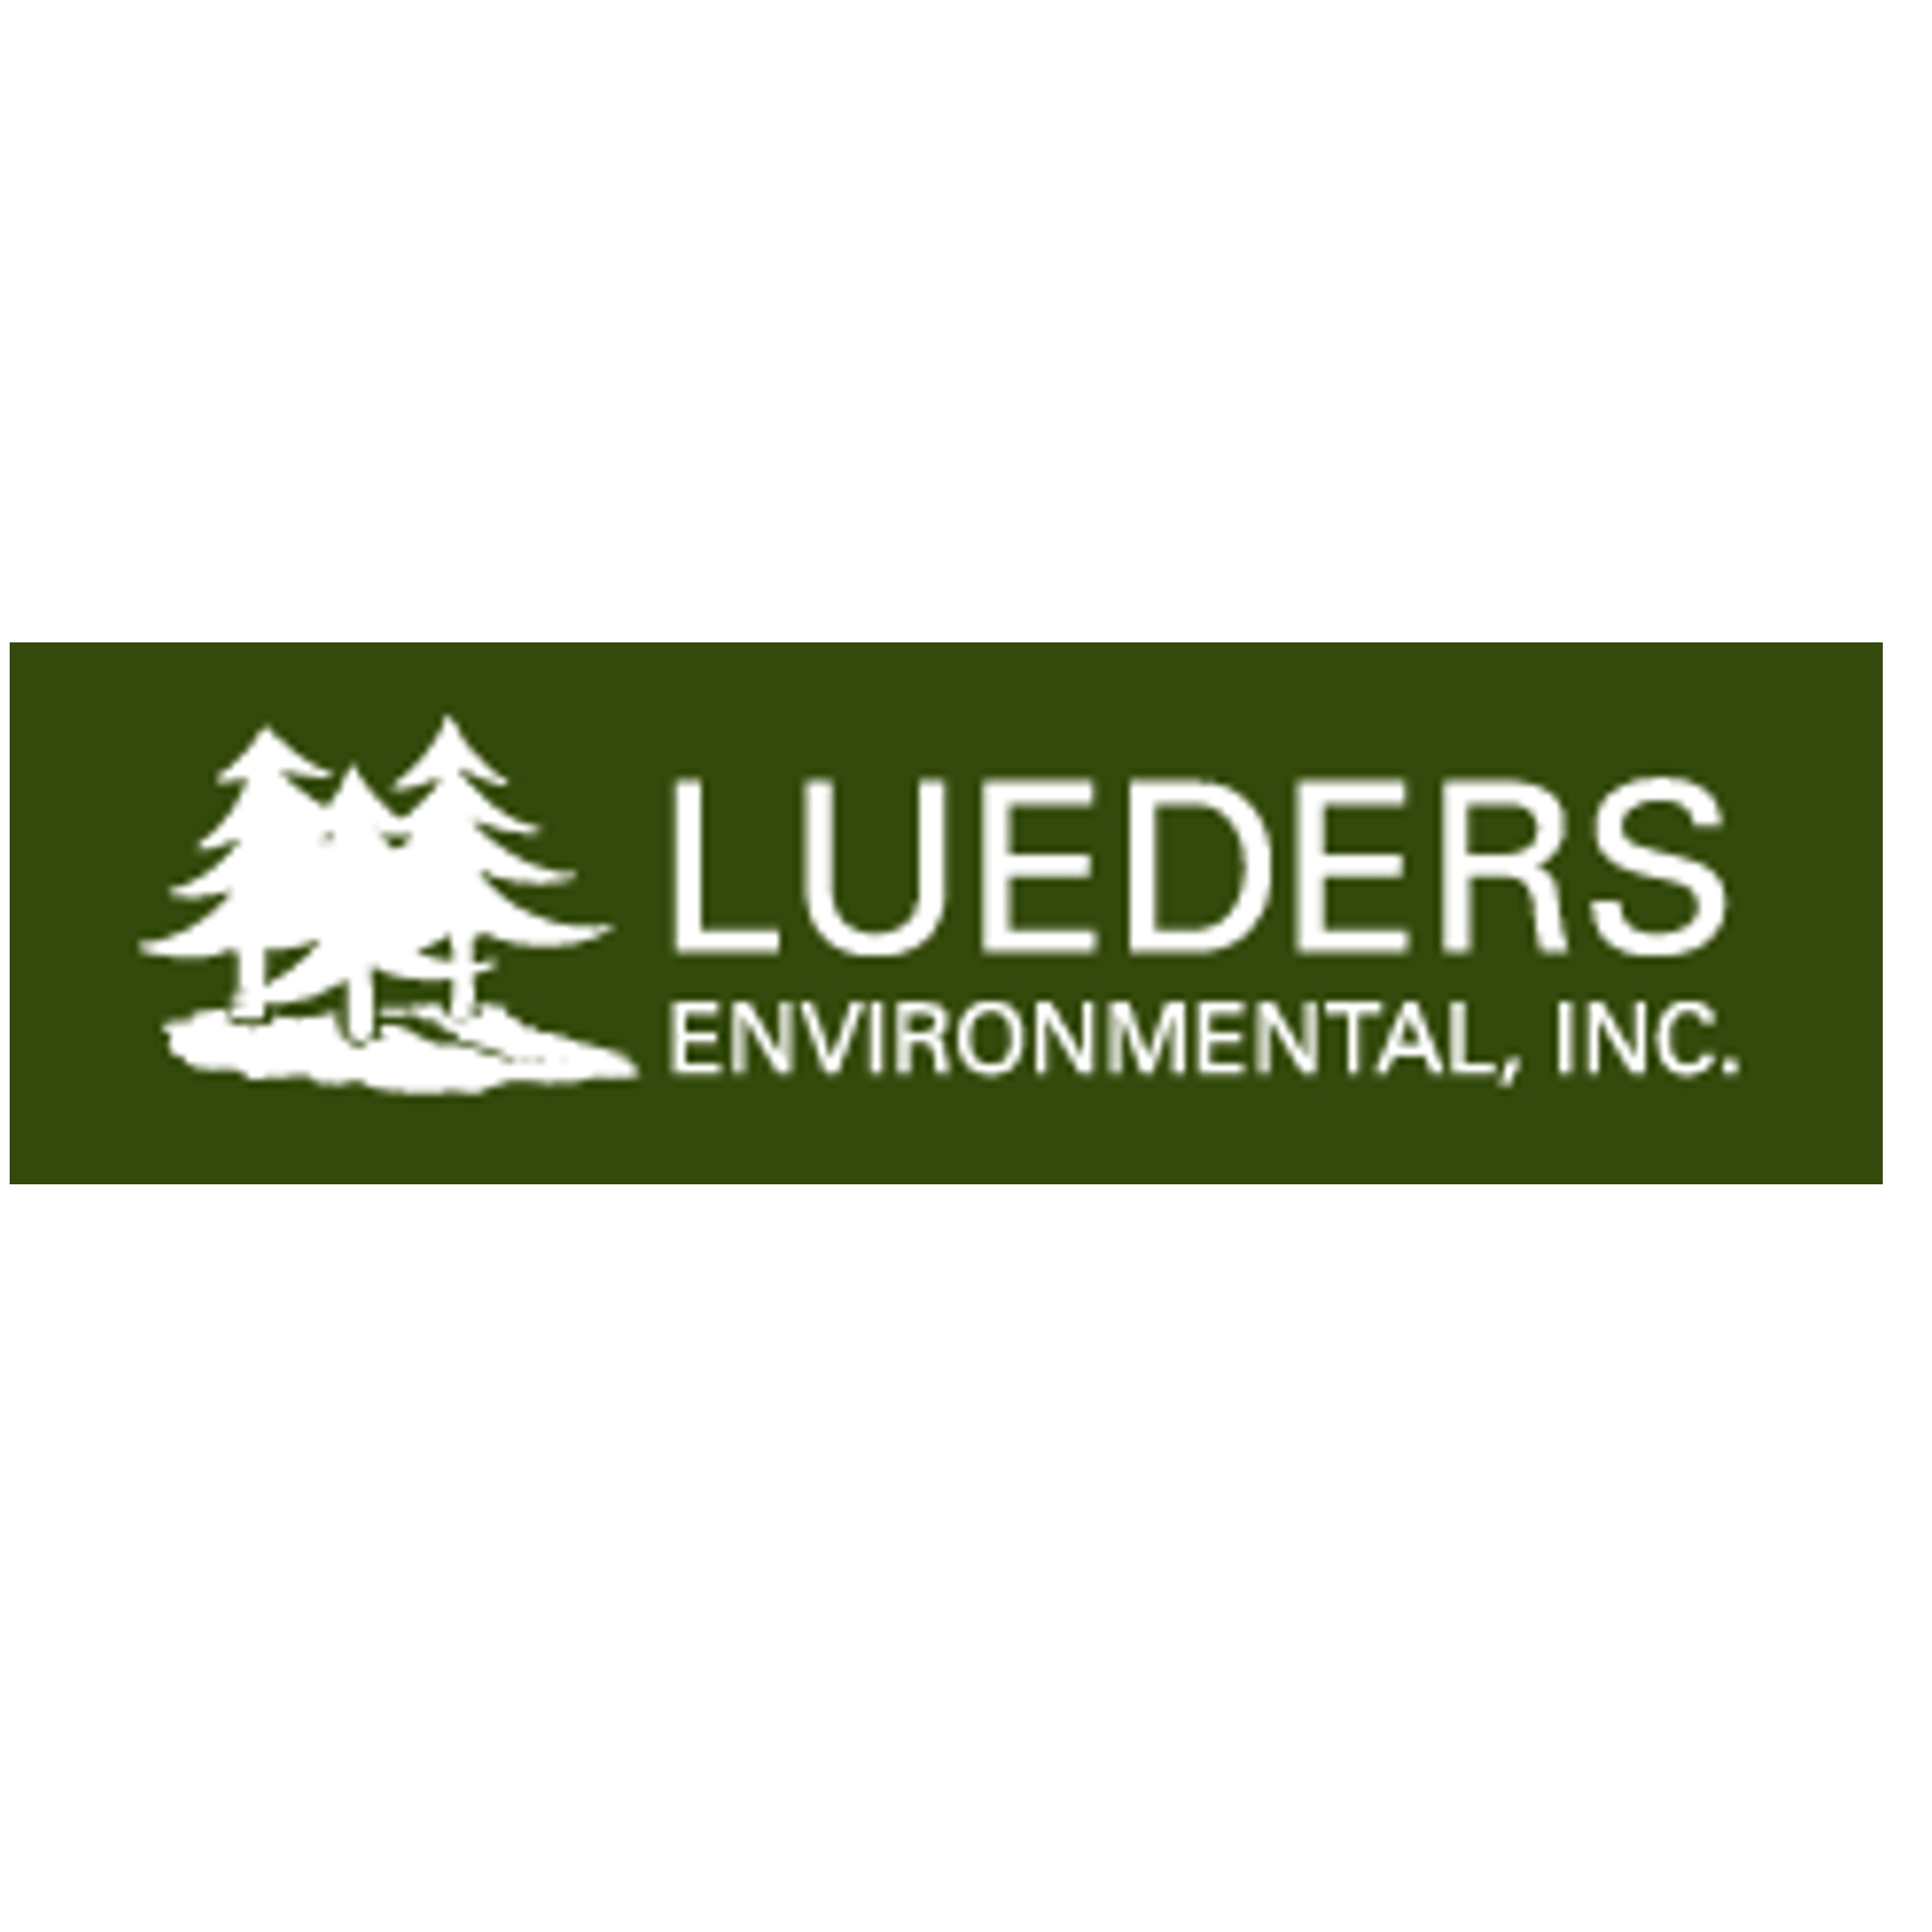 Lueders Environmental